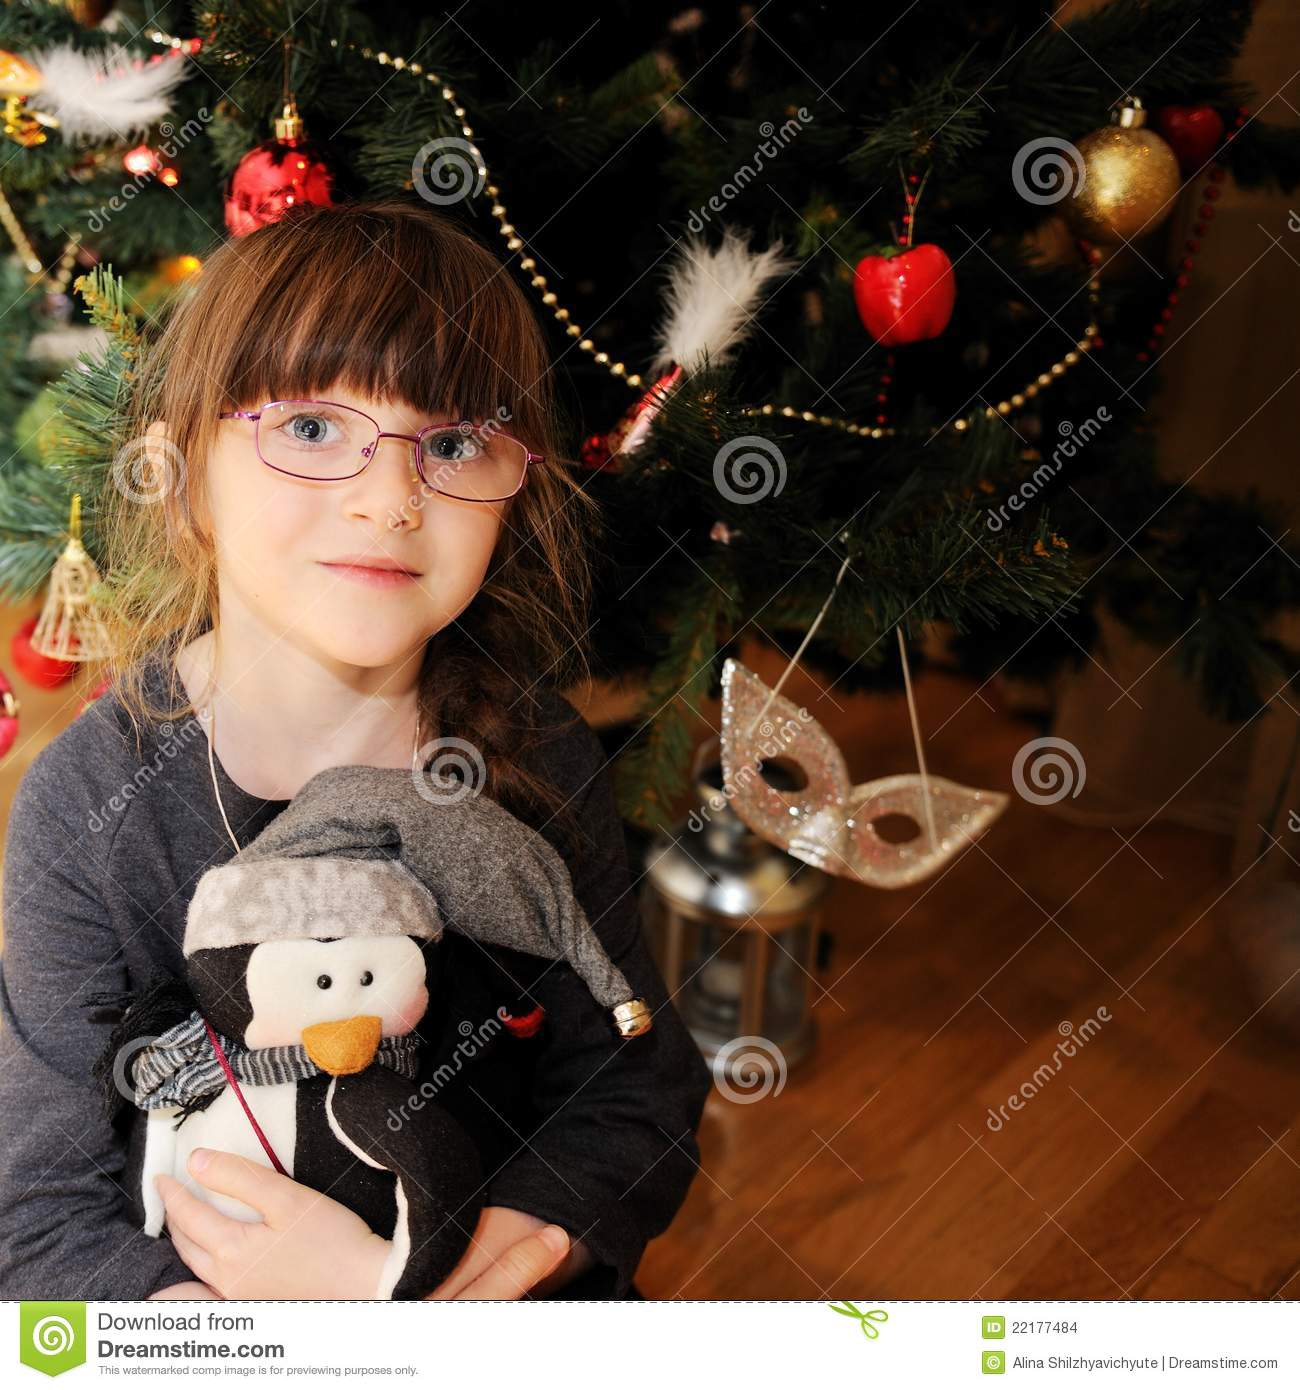 Little Girl Christmas Tree: Portrait Of Little Girl Under Christmas Tree Stock Photo